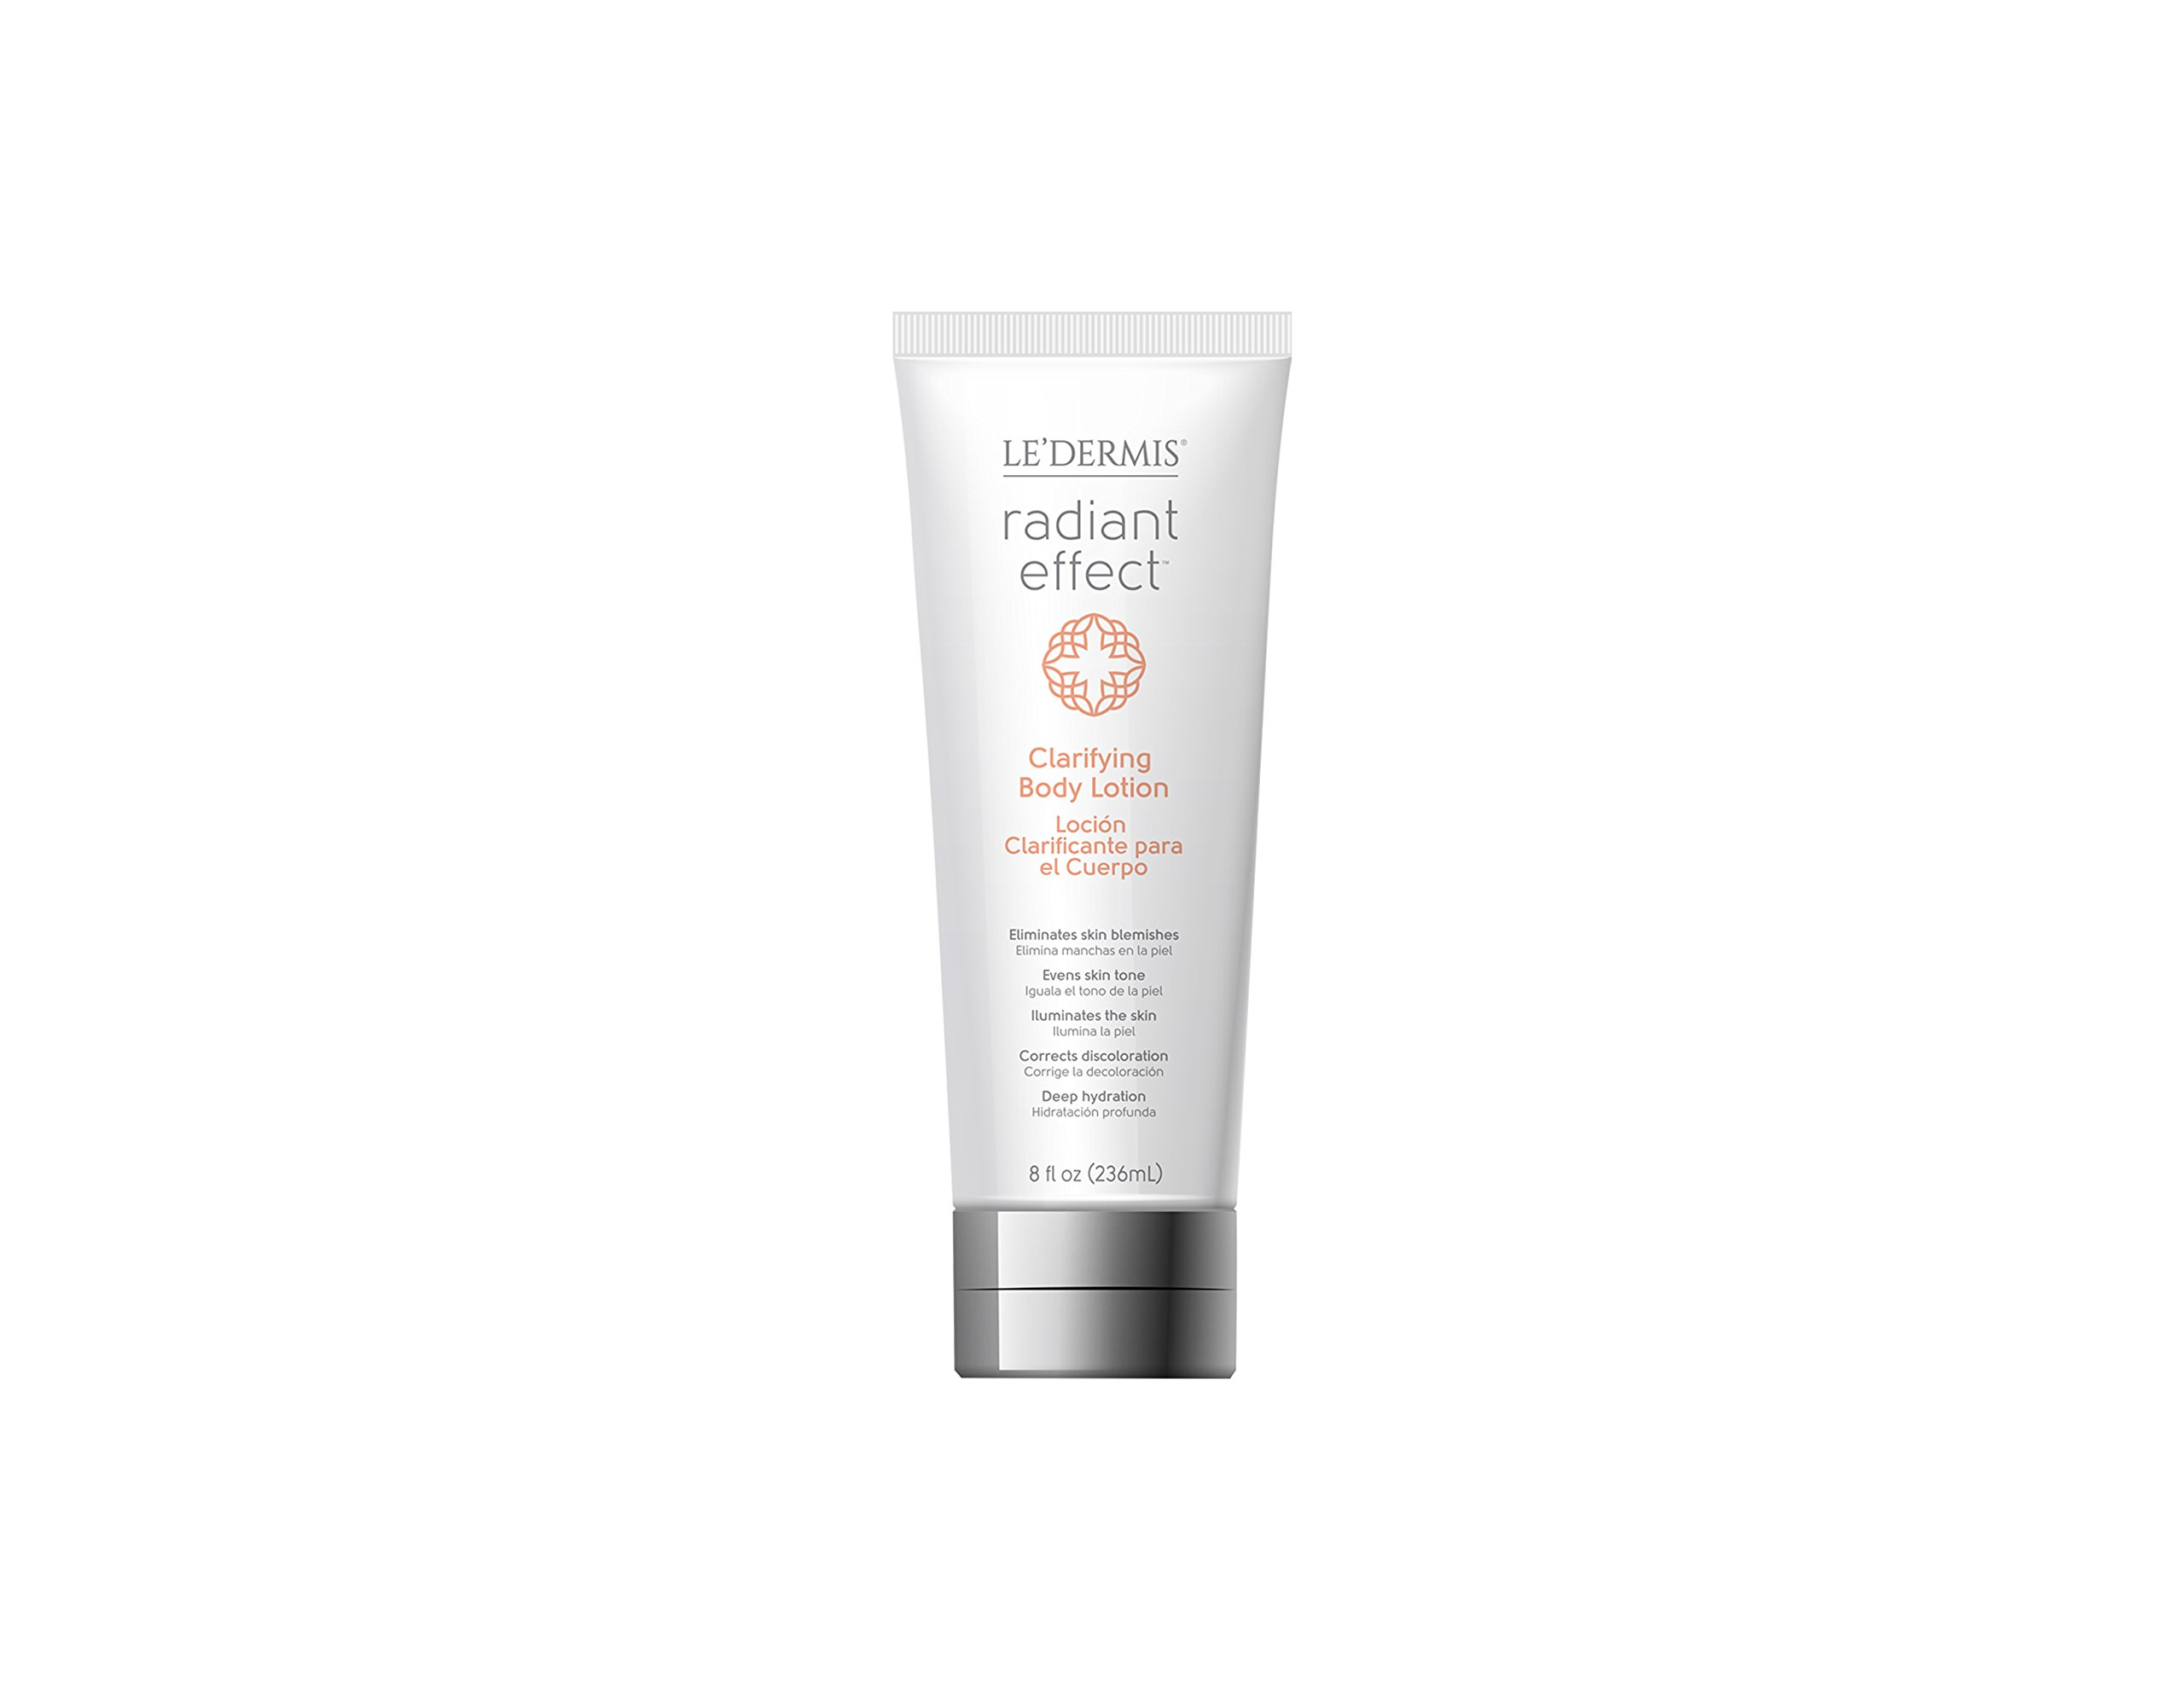 Ledermis Radiant Effect Clarifying Lotion